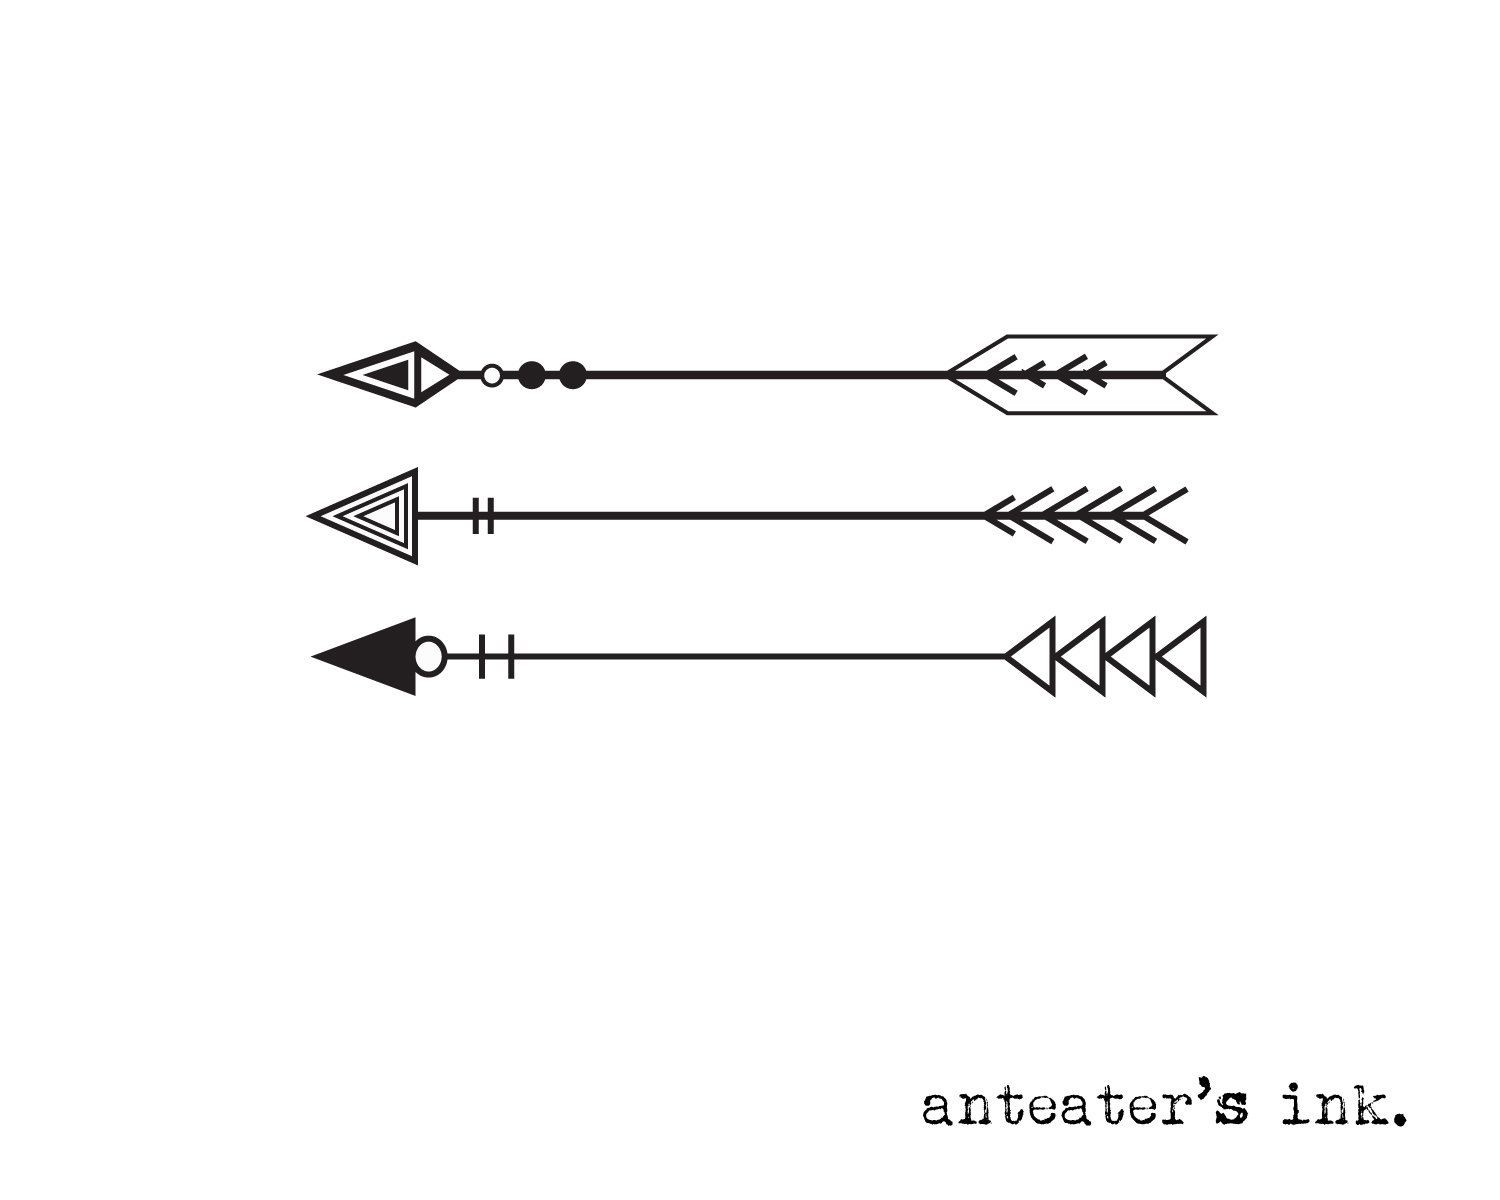 Arrow Temporary Tattoo Bow Tattoo by AnteatersInk on Etsy